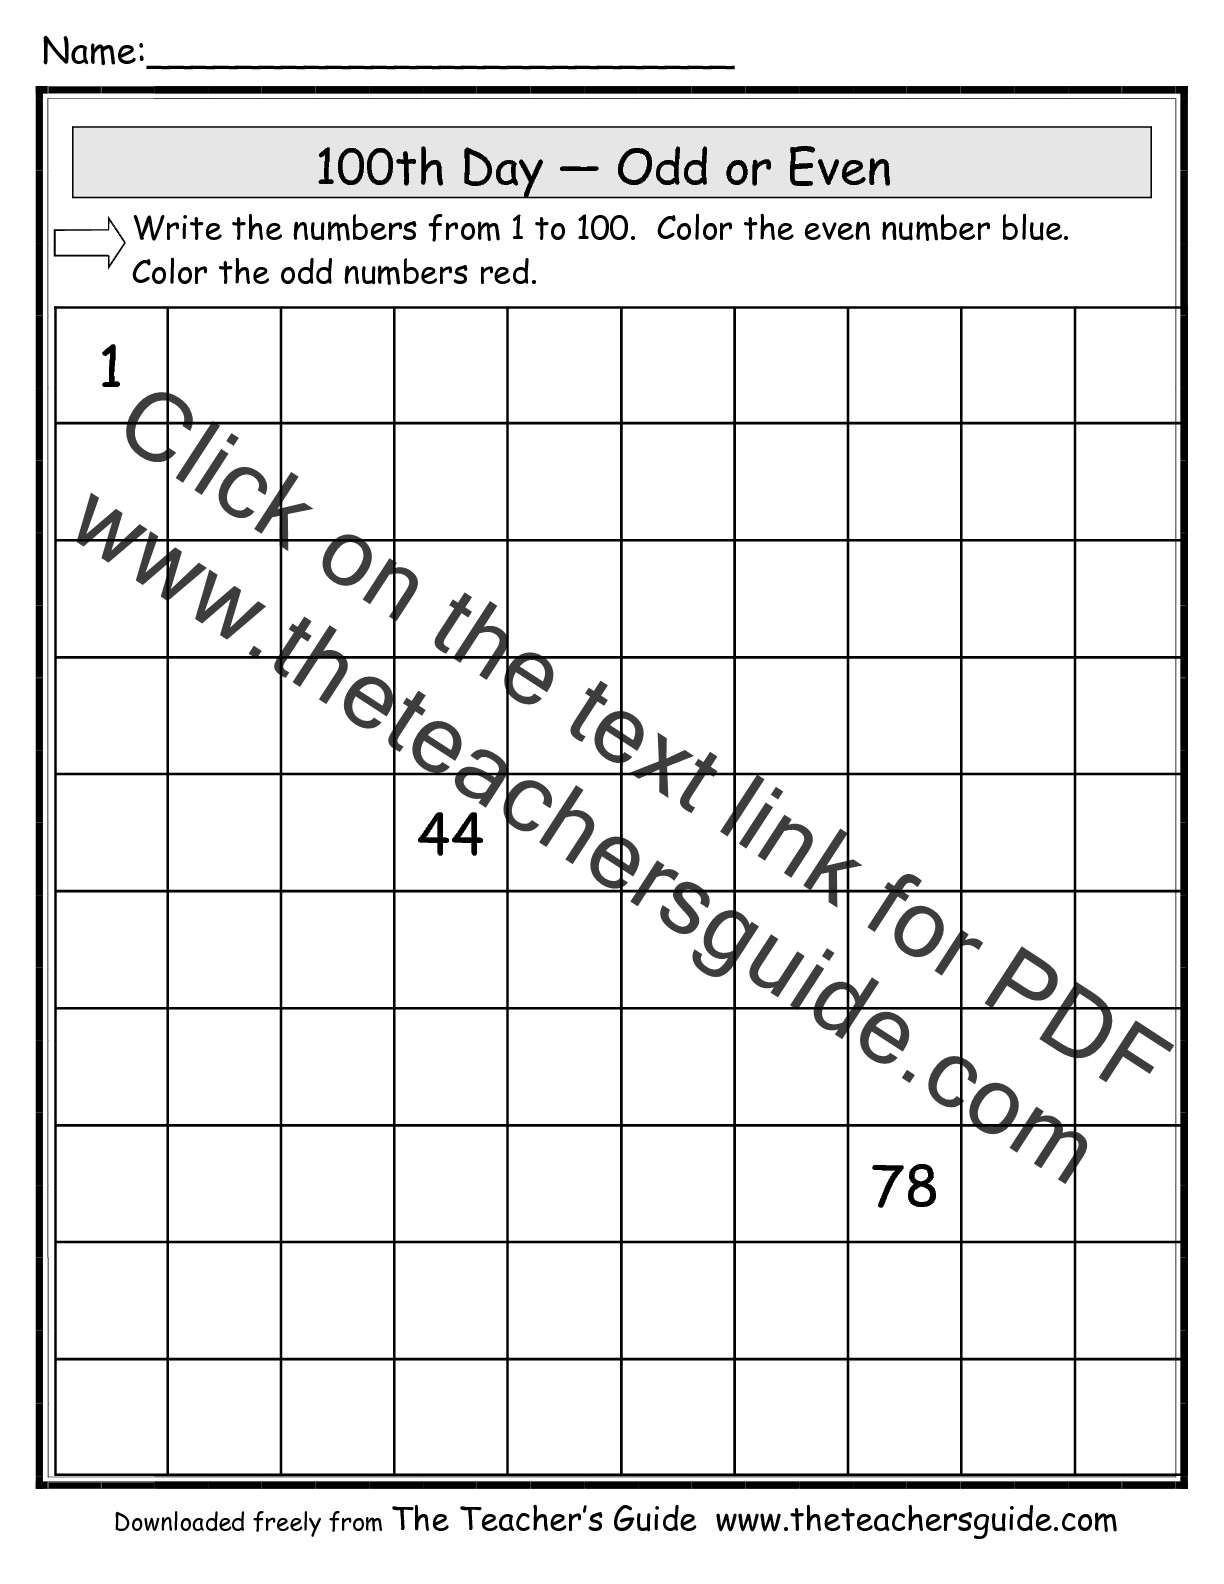 Worksheets 100th Day Of School Worksheets the teachers guide 100th day of school theme page worksheet